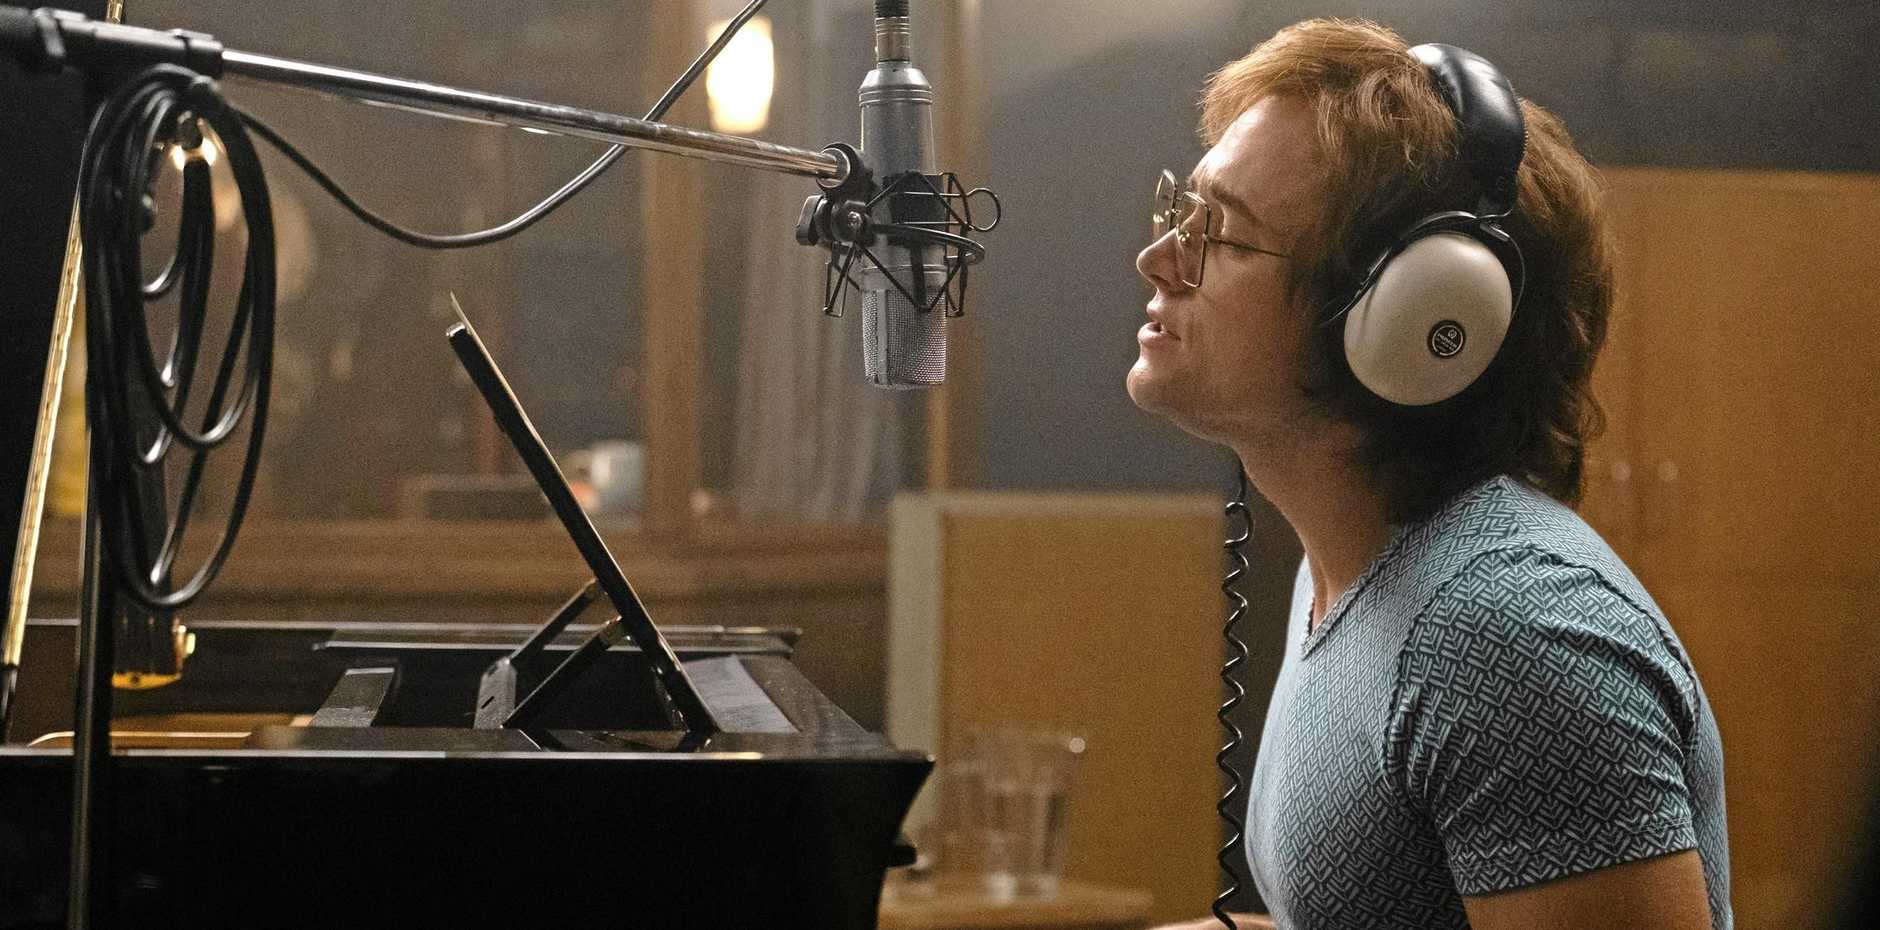 Taron Egerton as Elton John in a scene from Rocketman. Supplied by Paramount Pictures.